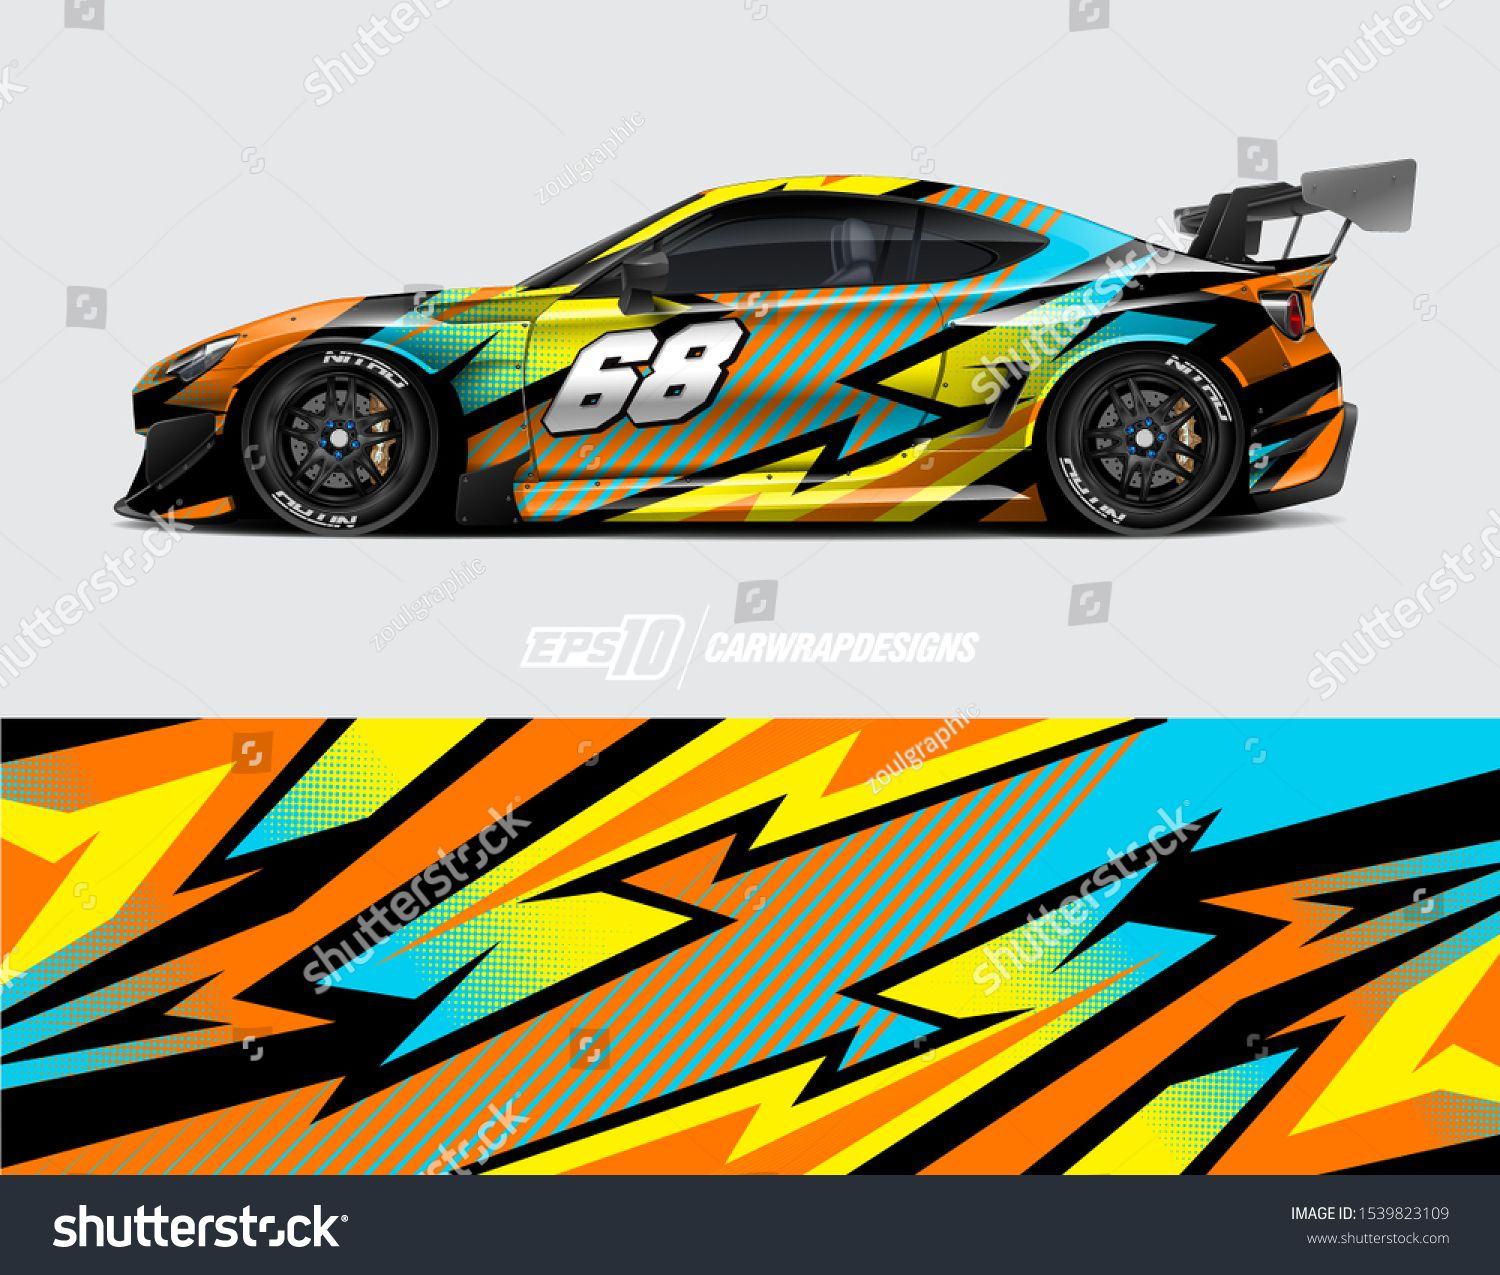 Car Wrap Decal Designs Abstract Racing And Sport Background For Racing Livery Or Daily Use Car Vinyl Sticker Vecto Racing Car Design Car Wrap Design Car Wrap [ 1275 x 1500 Pixel ]